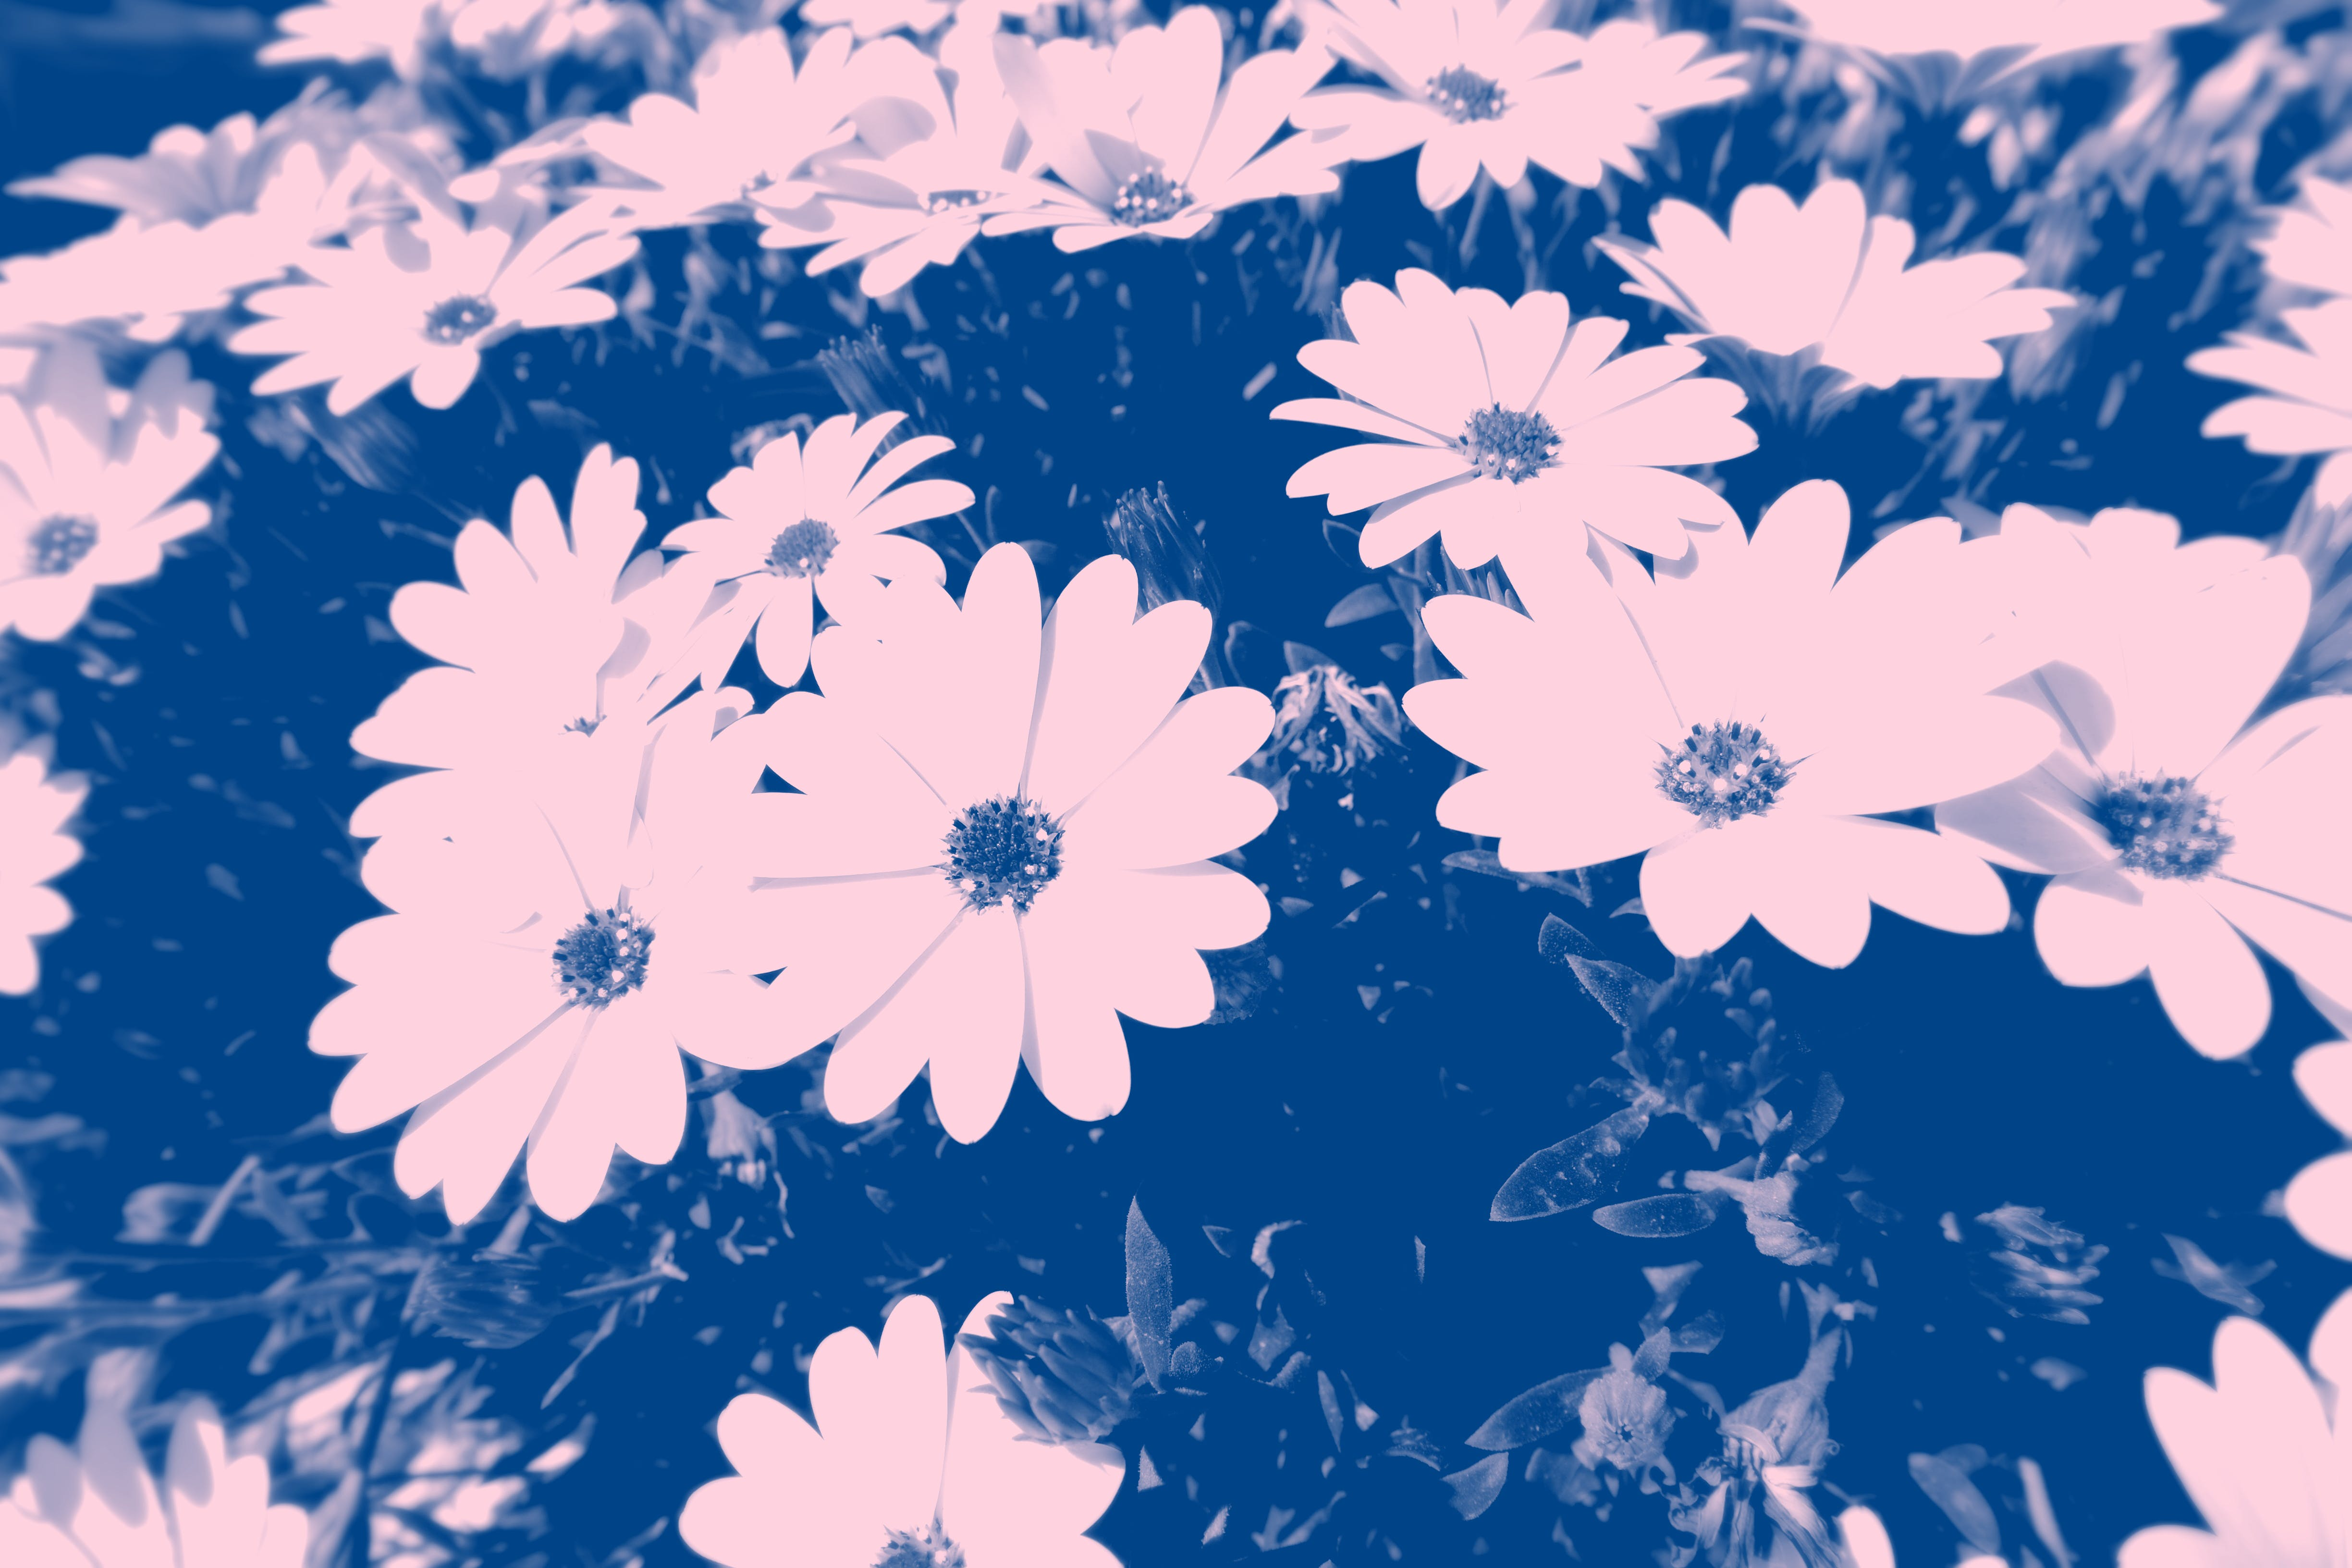 Blue Photo of Petaled Flowers